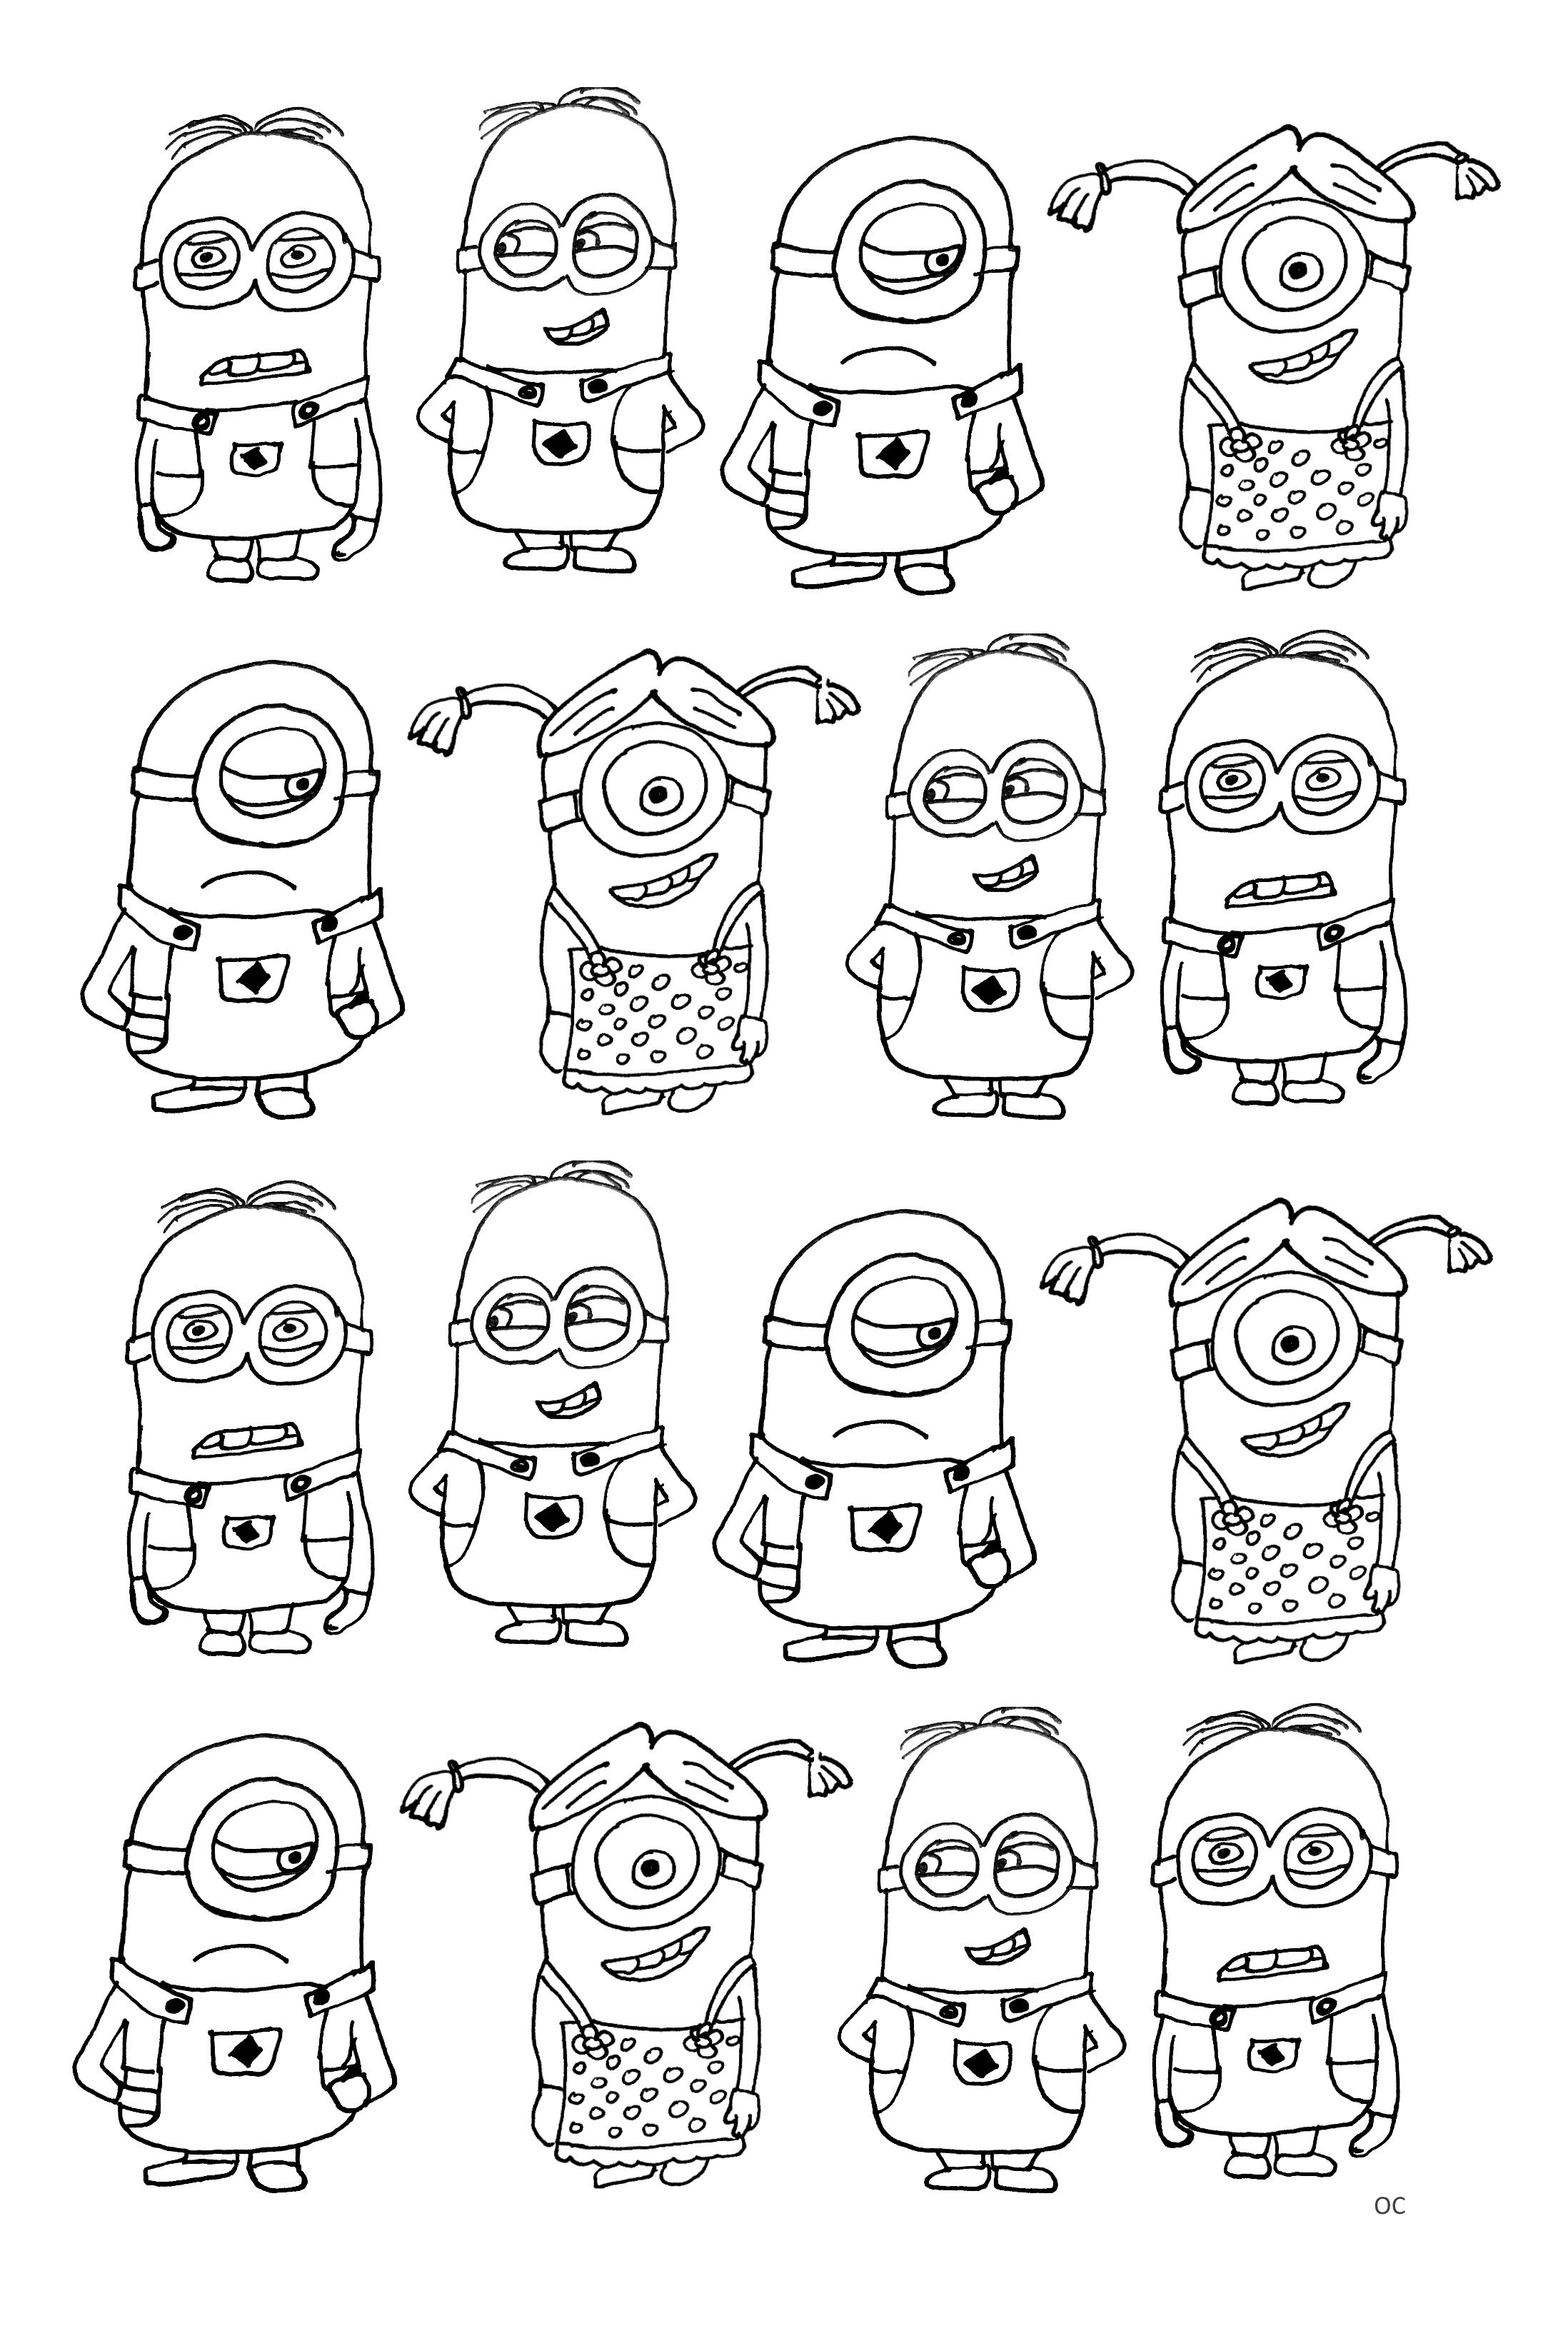 Numerous minions - Image with : Minions